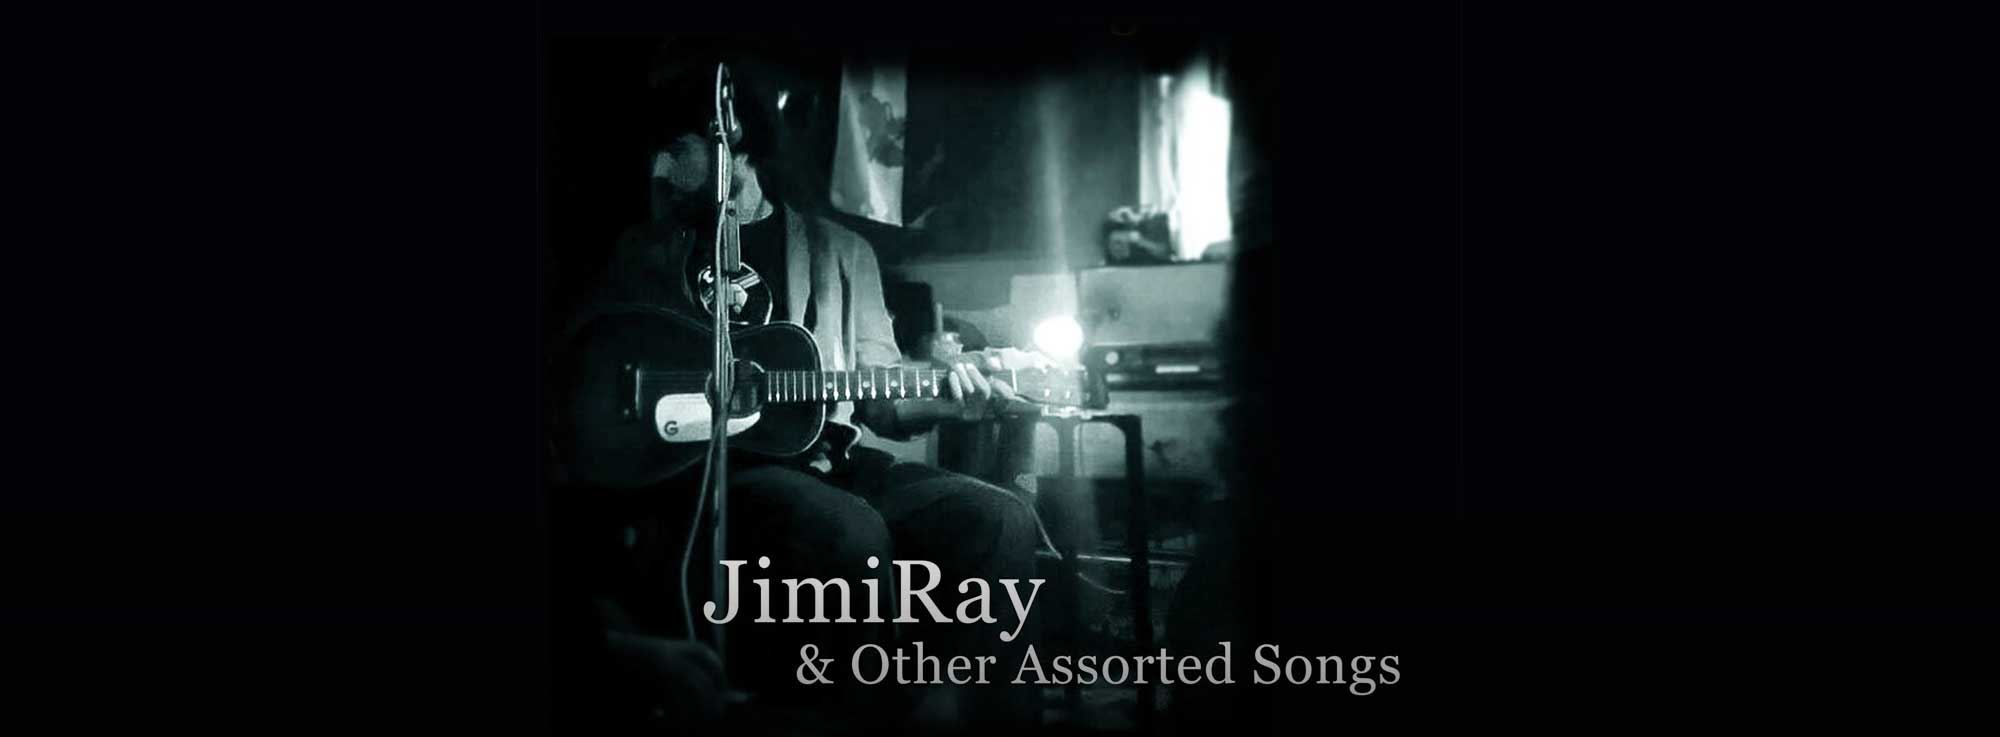 Canosa di Puglia: JimiRay & Other Assorted Songs